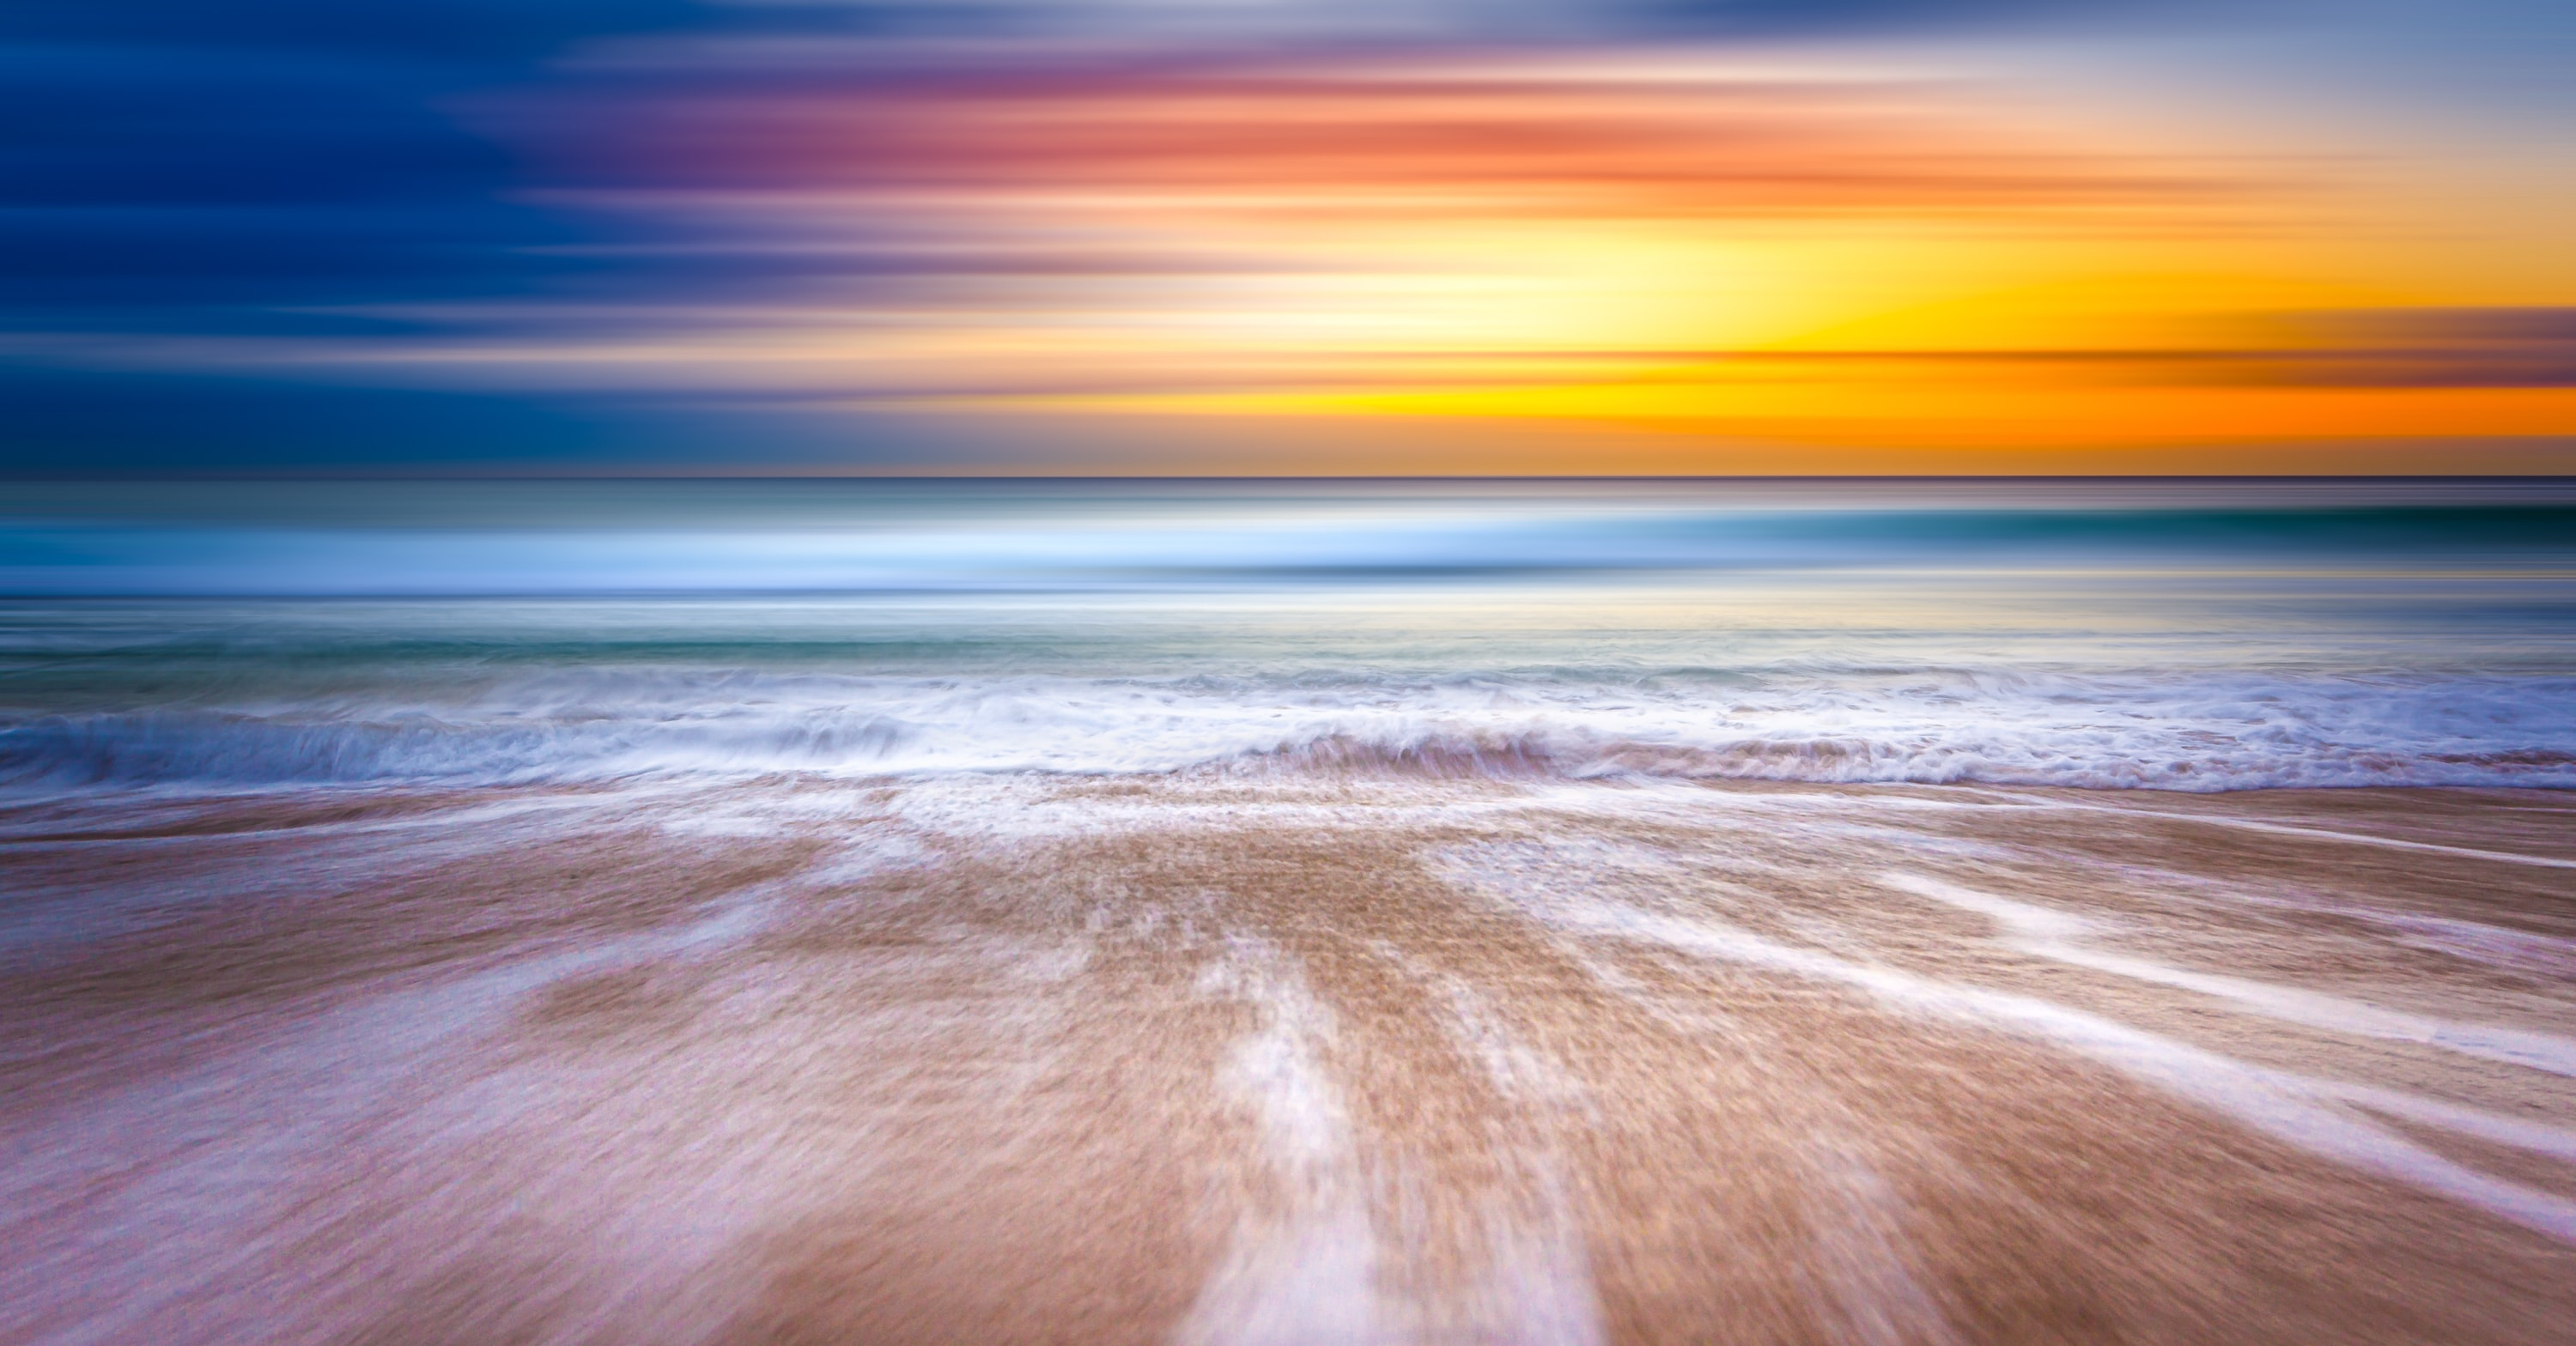 A colorful shot of a blurry shoreline on a Sydney beach, with a sunset in the horizon